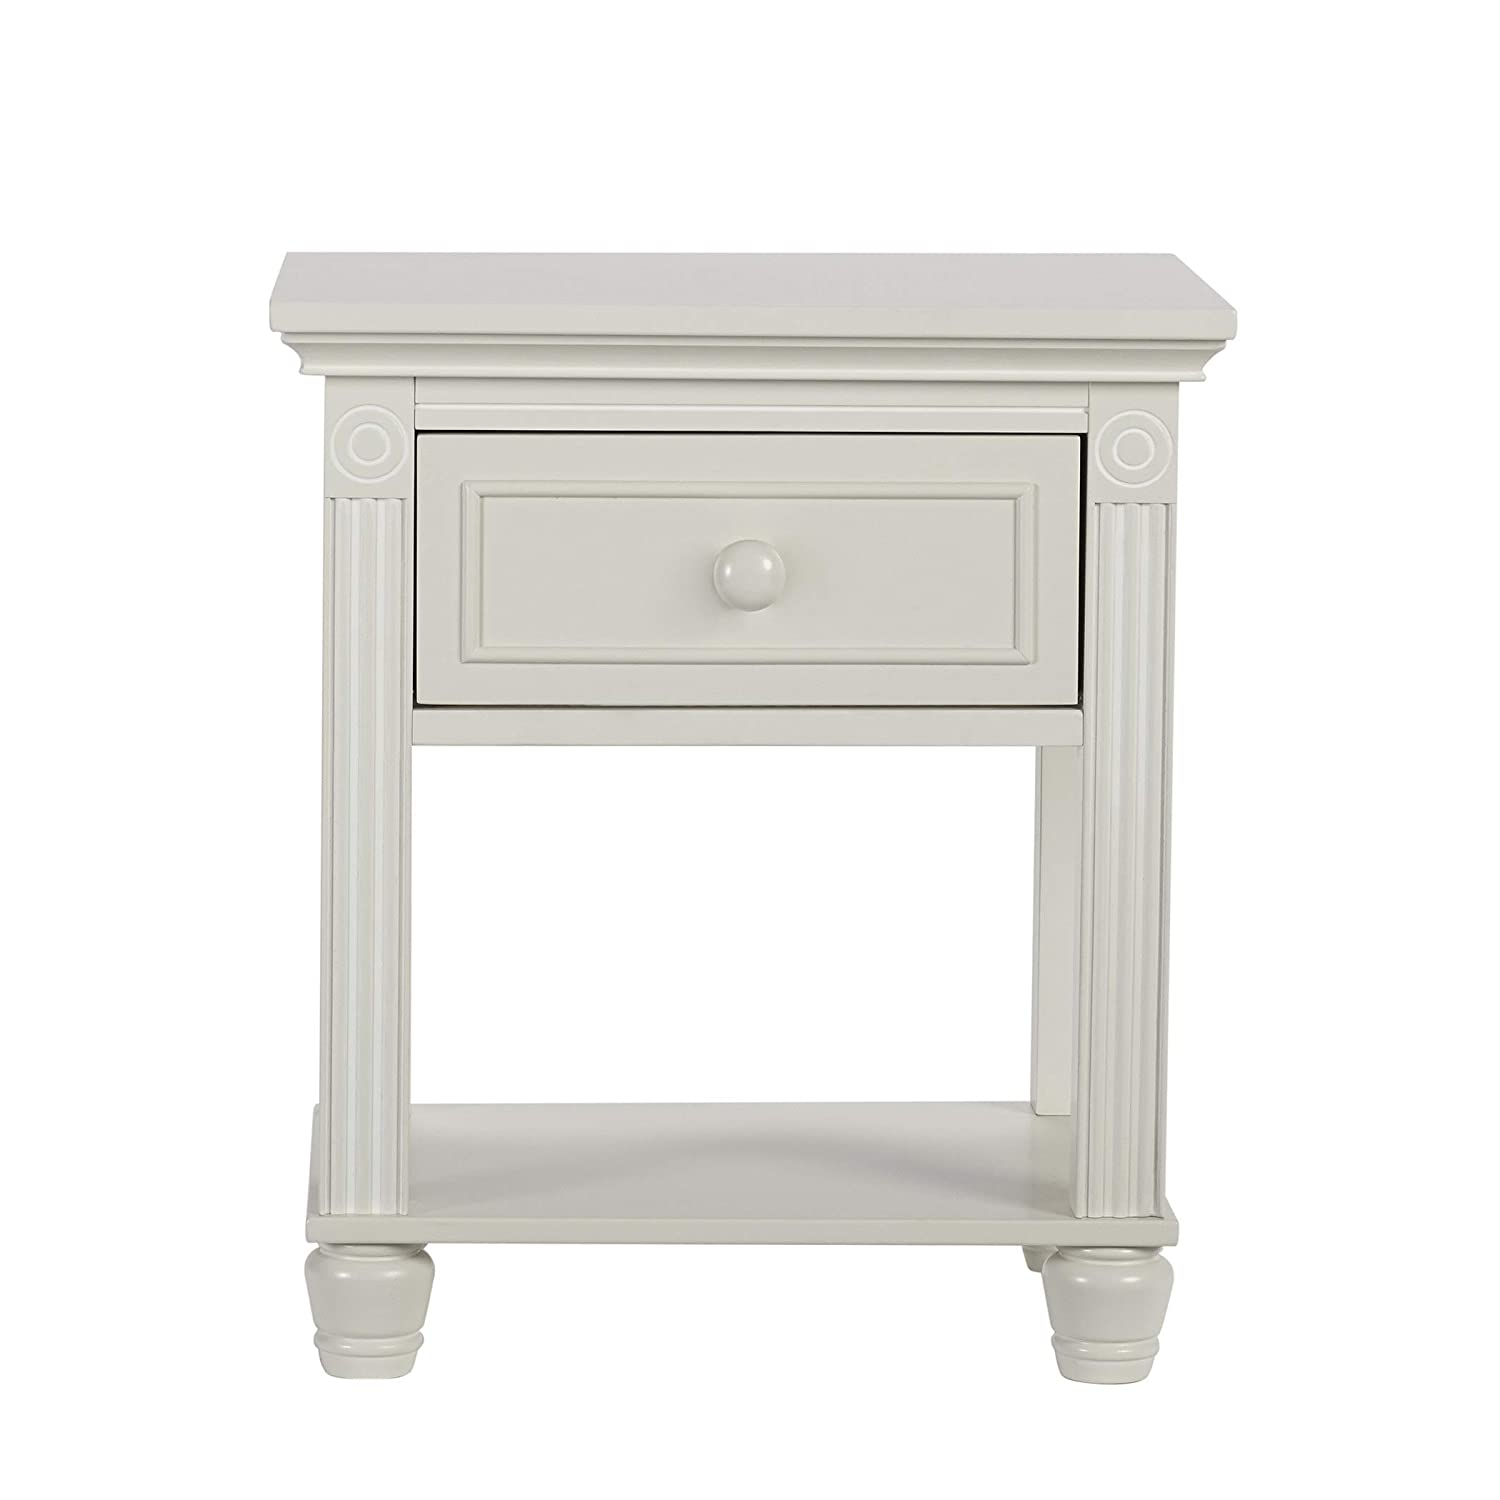 Montana Collection Natural Hardwood Nightstand End Table Combo | Lasting Quality & Design | Kiln-dried & Hand-Crafted Construction, Glazed White